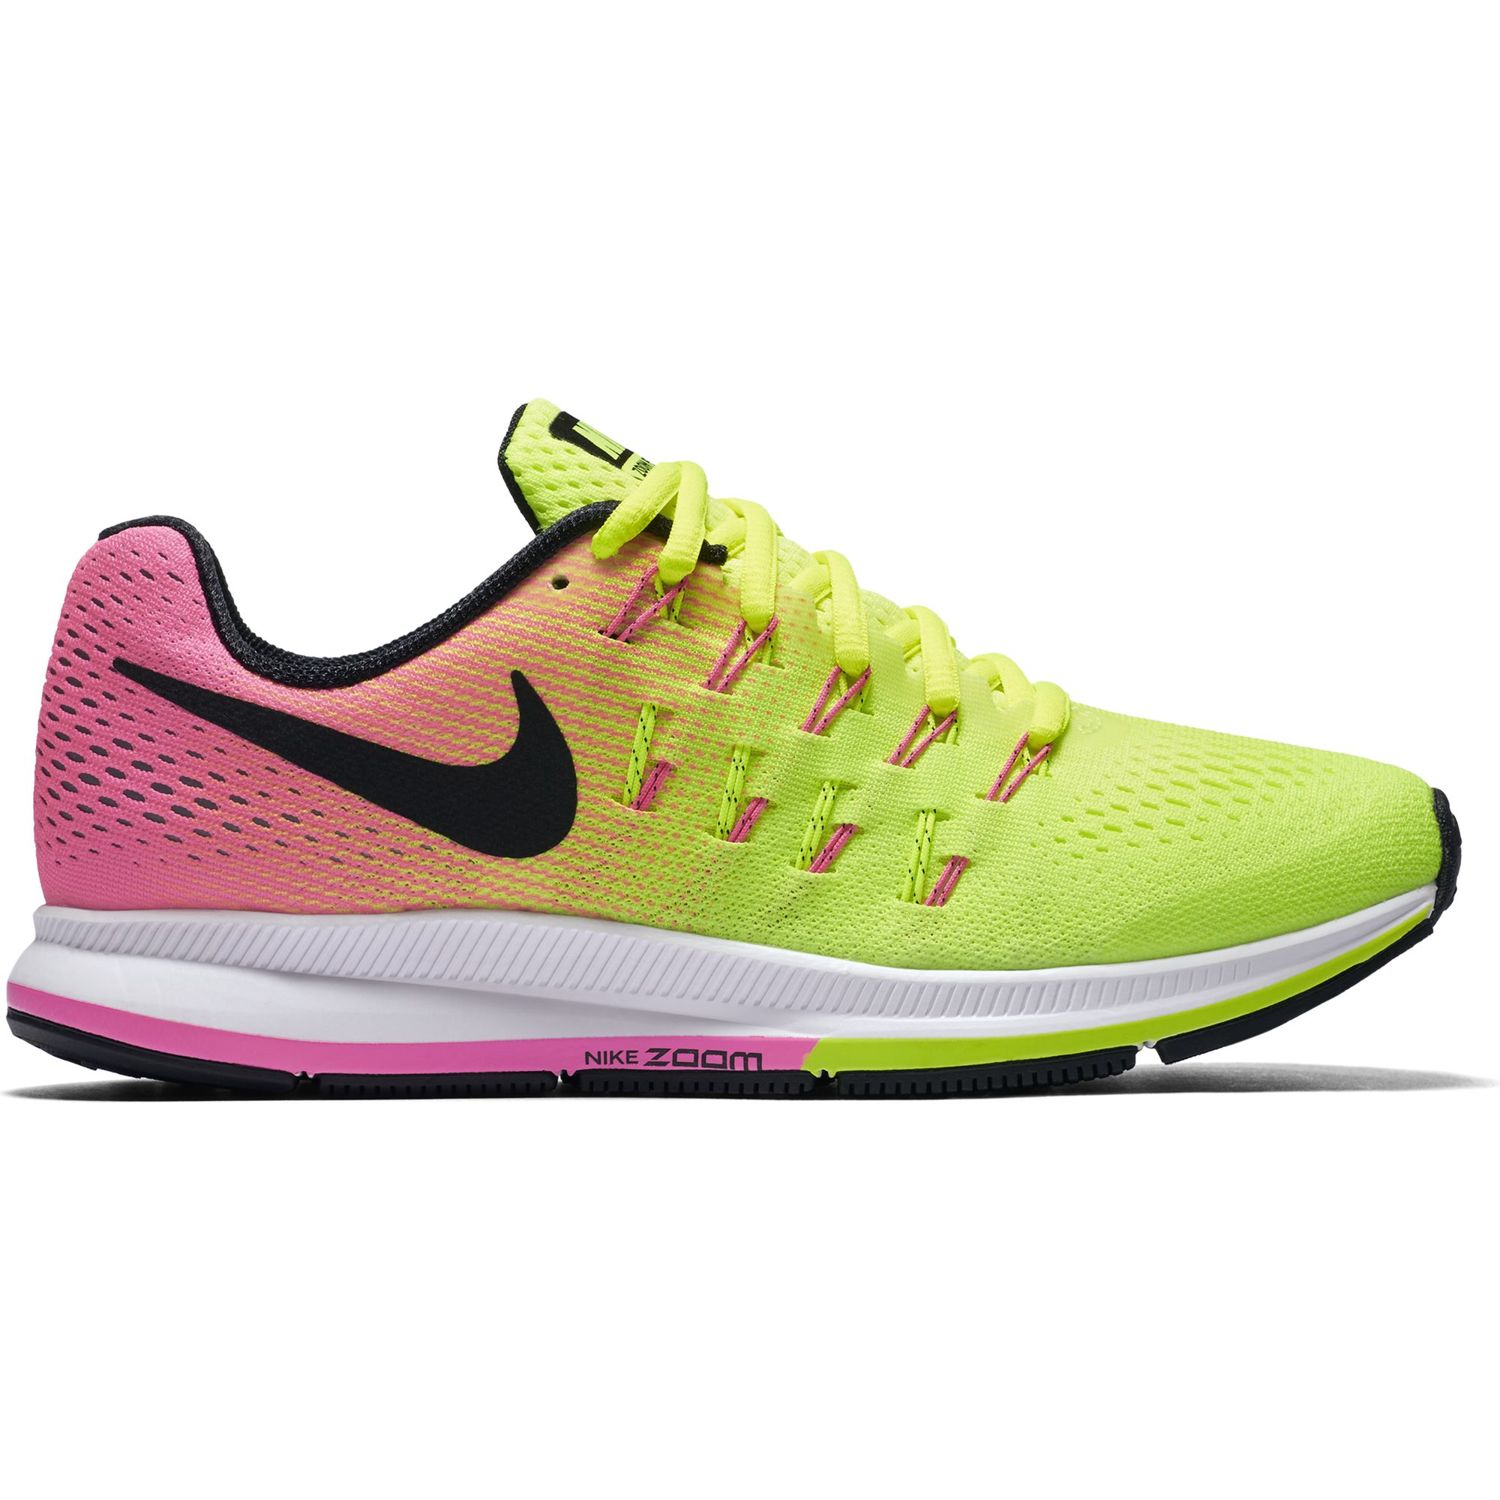 Buty do biegania Nike Air Zoom Pegasus 33 846328 999